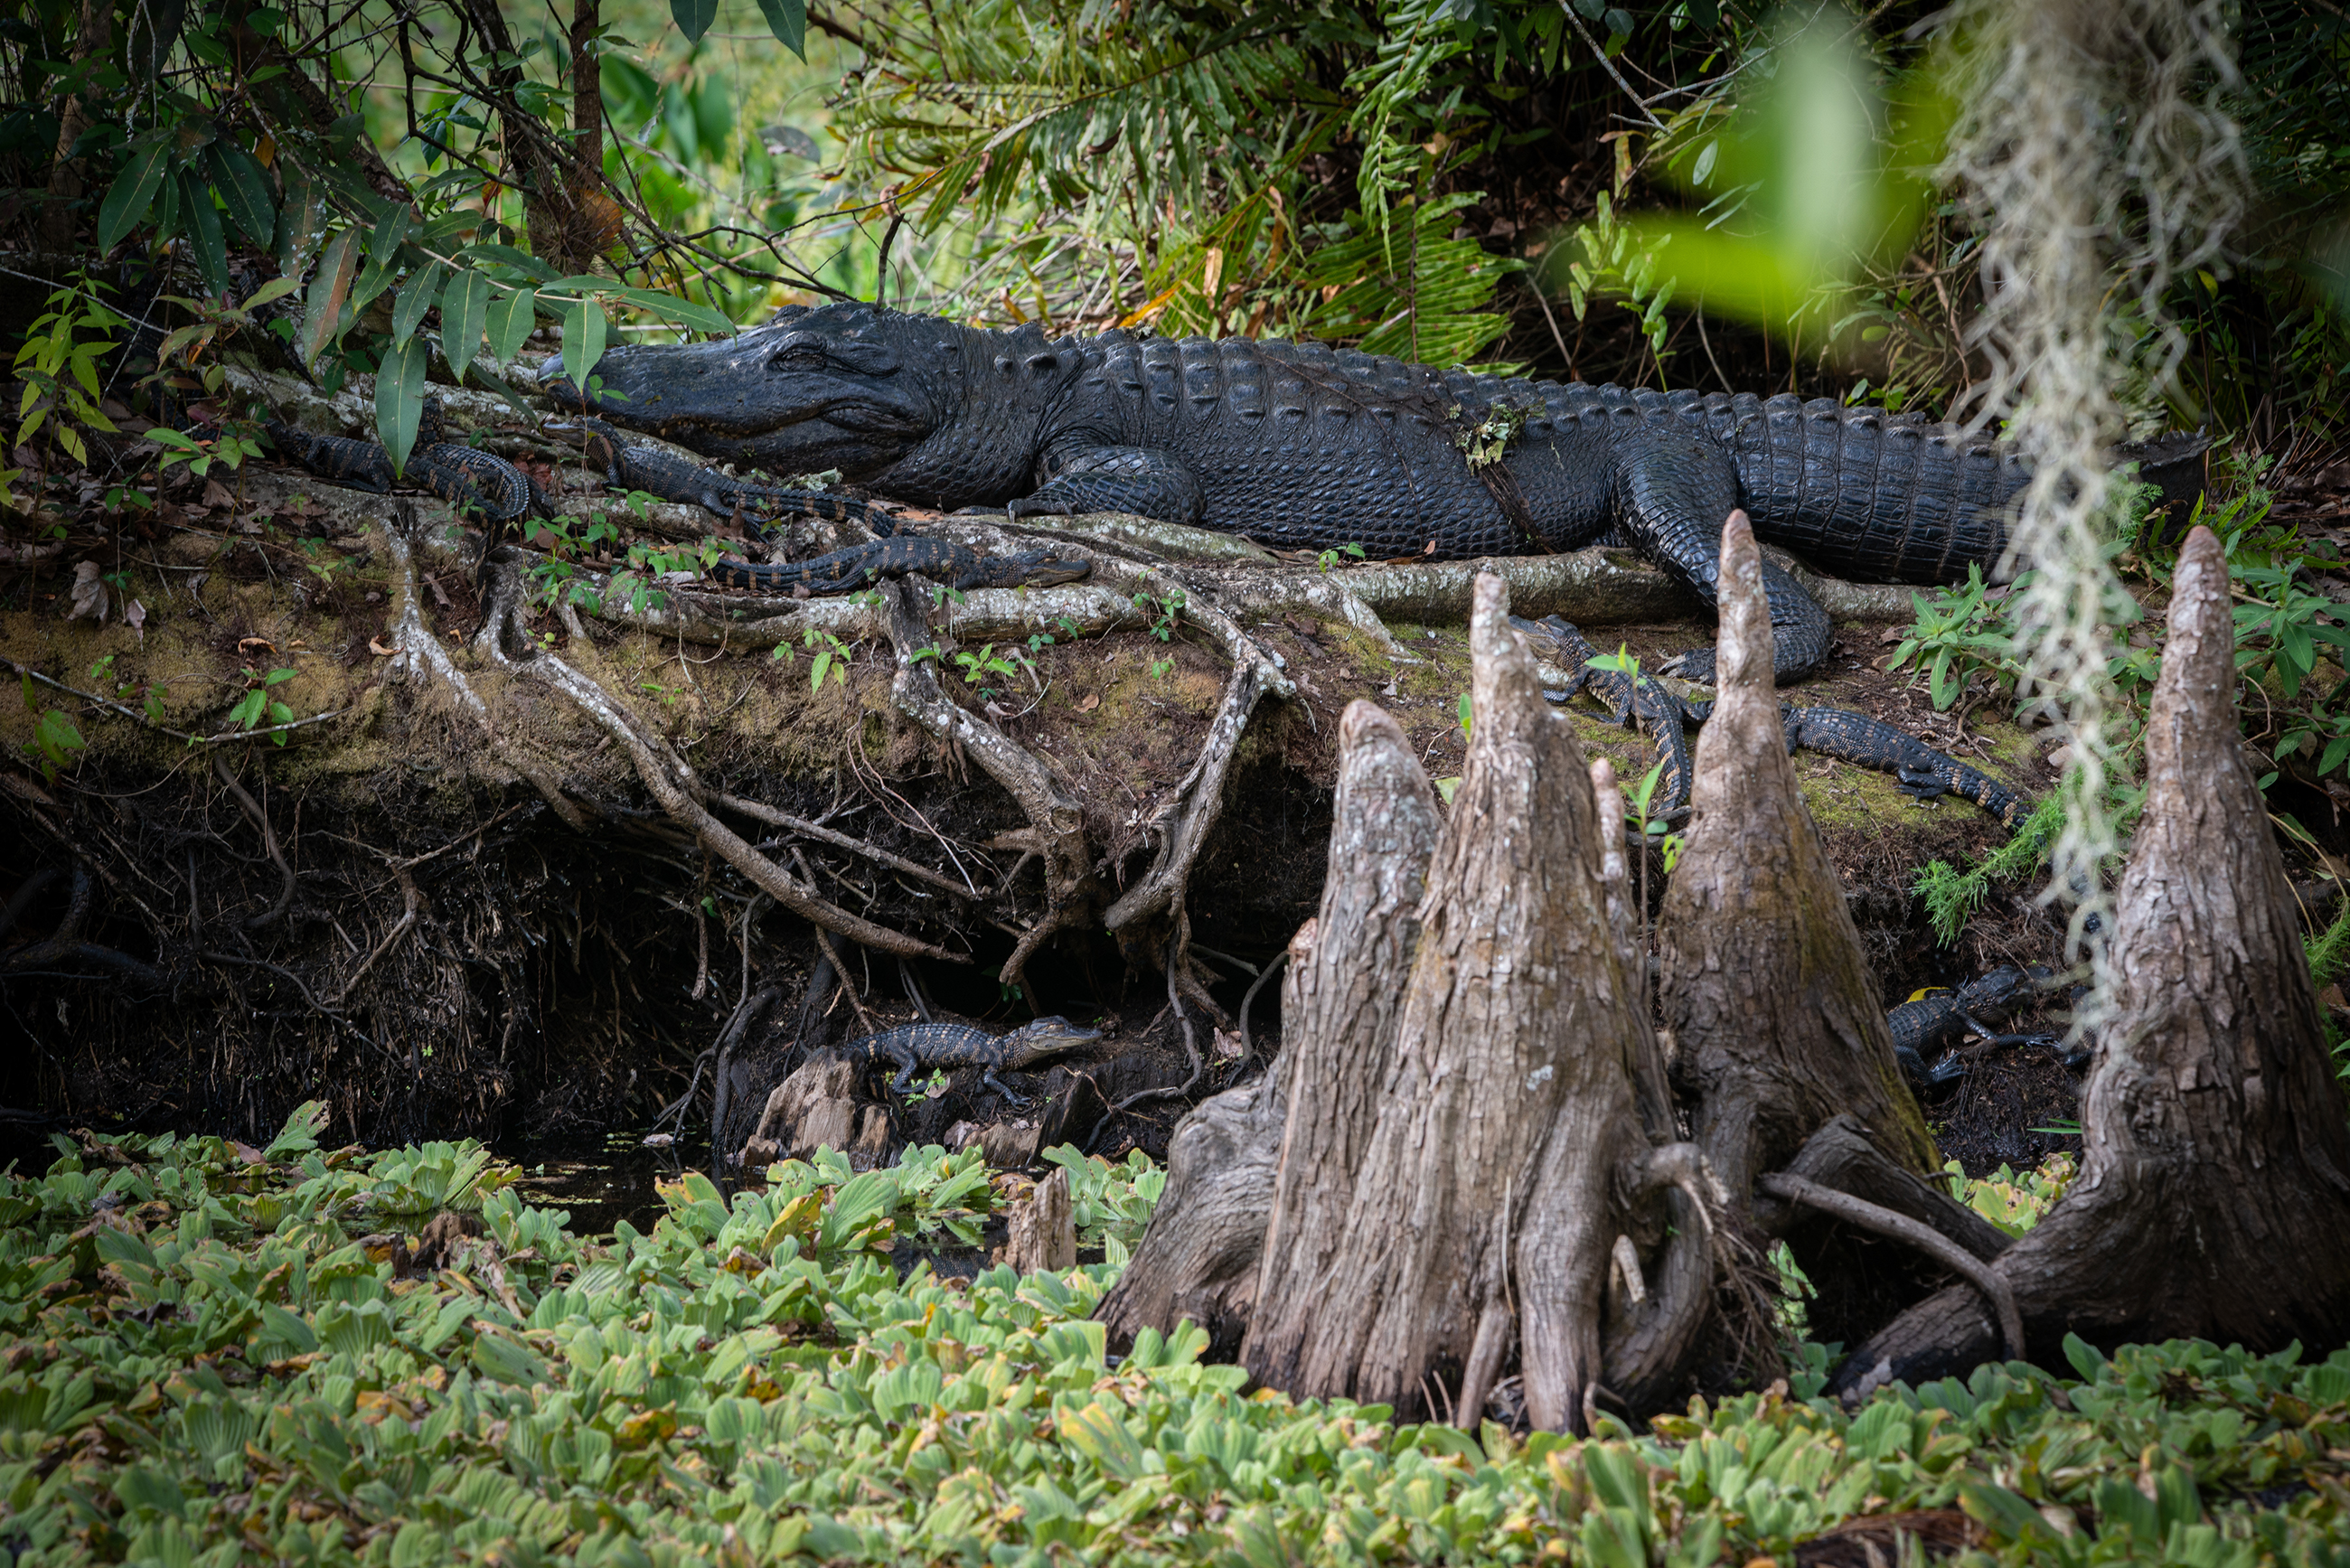 #alligator, #reptile, #wildlife, #mother, #babies, #gator, #corkscrew, #florida, #thingstodo, #corkscrewswampsanctuary, #wildlife, #wildlifephotography, #nikon, #tamron, #howmany #dangerous, #territory